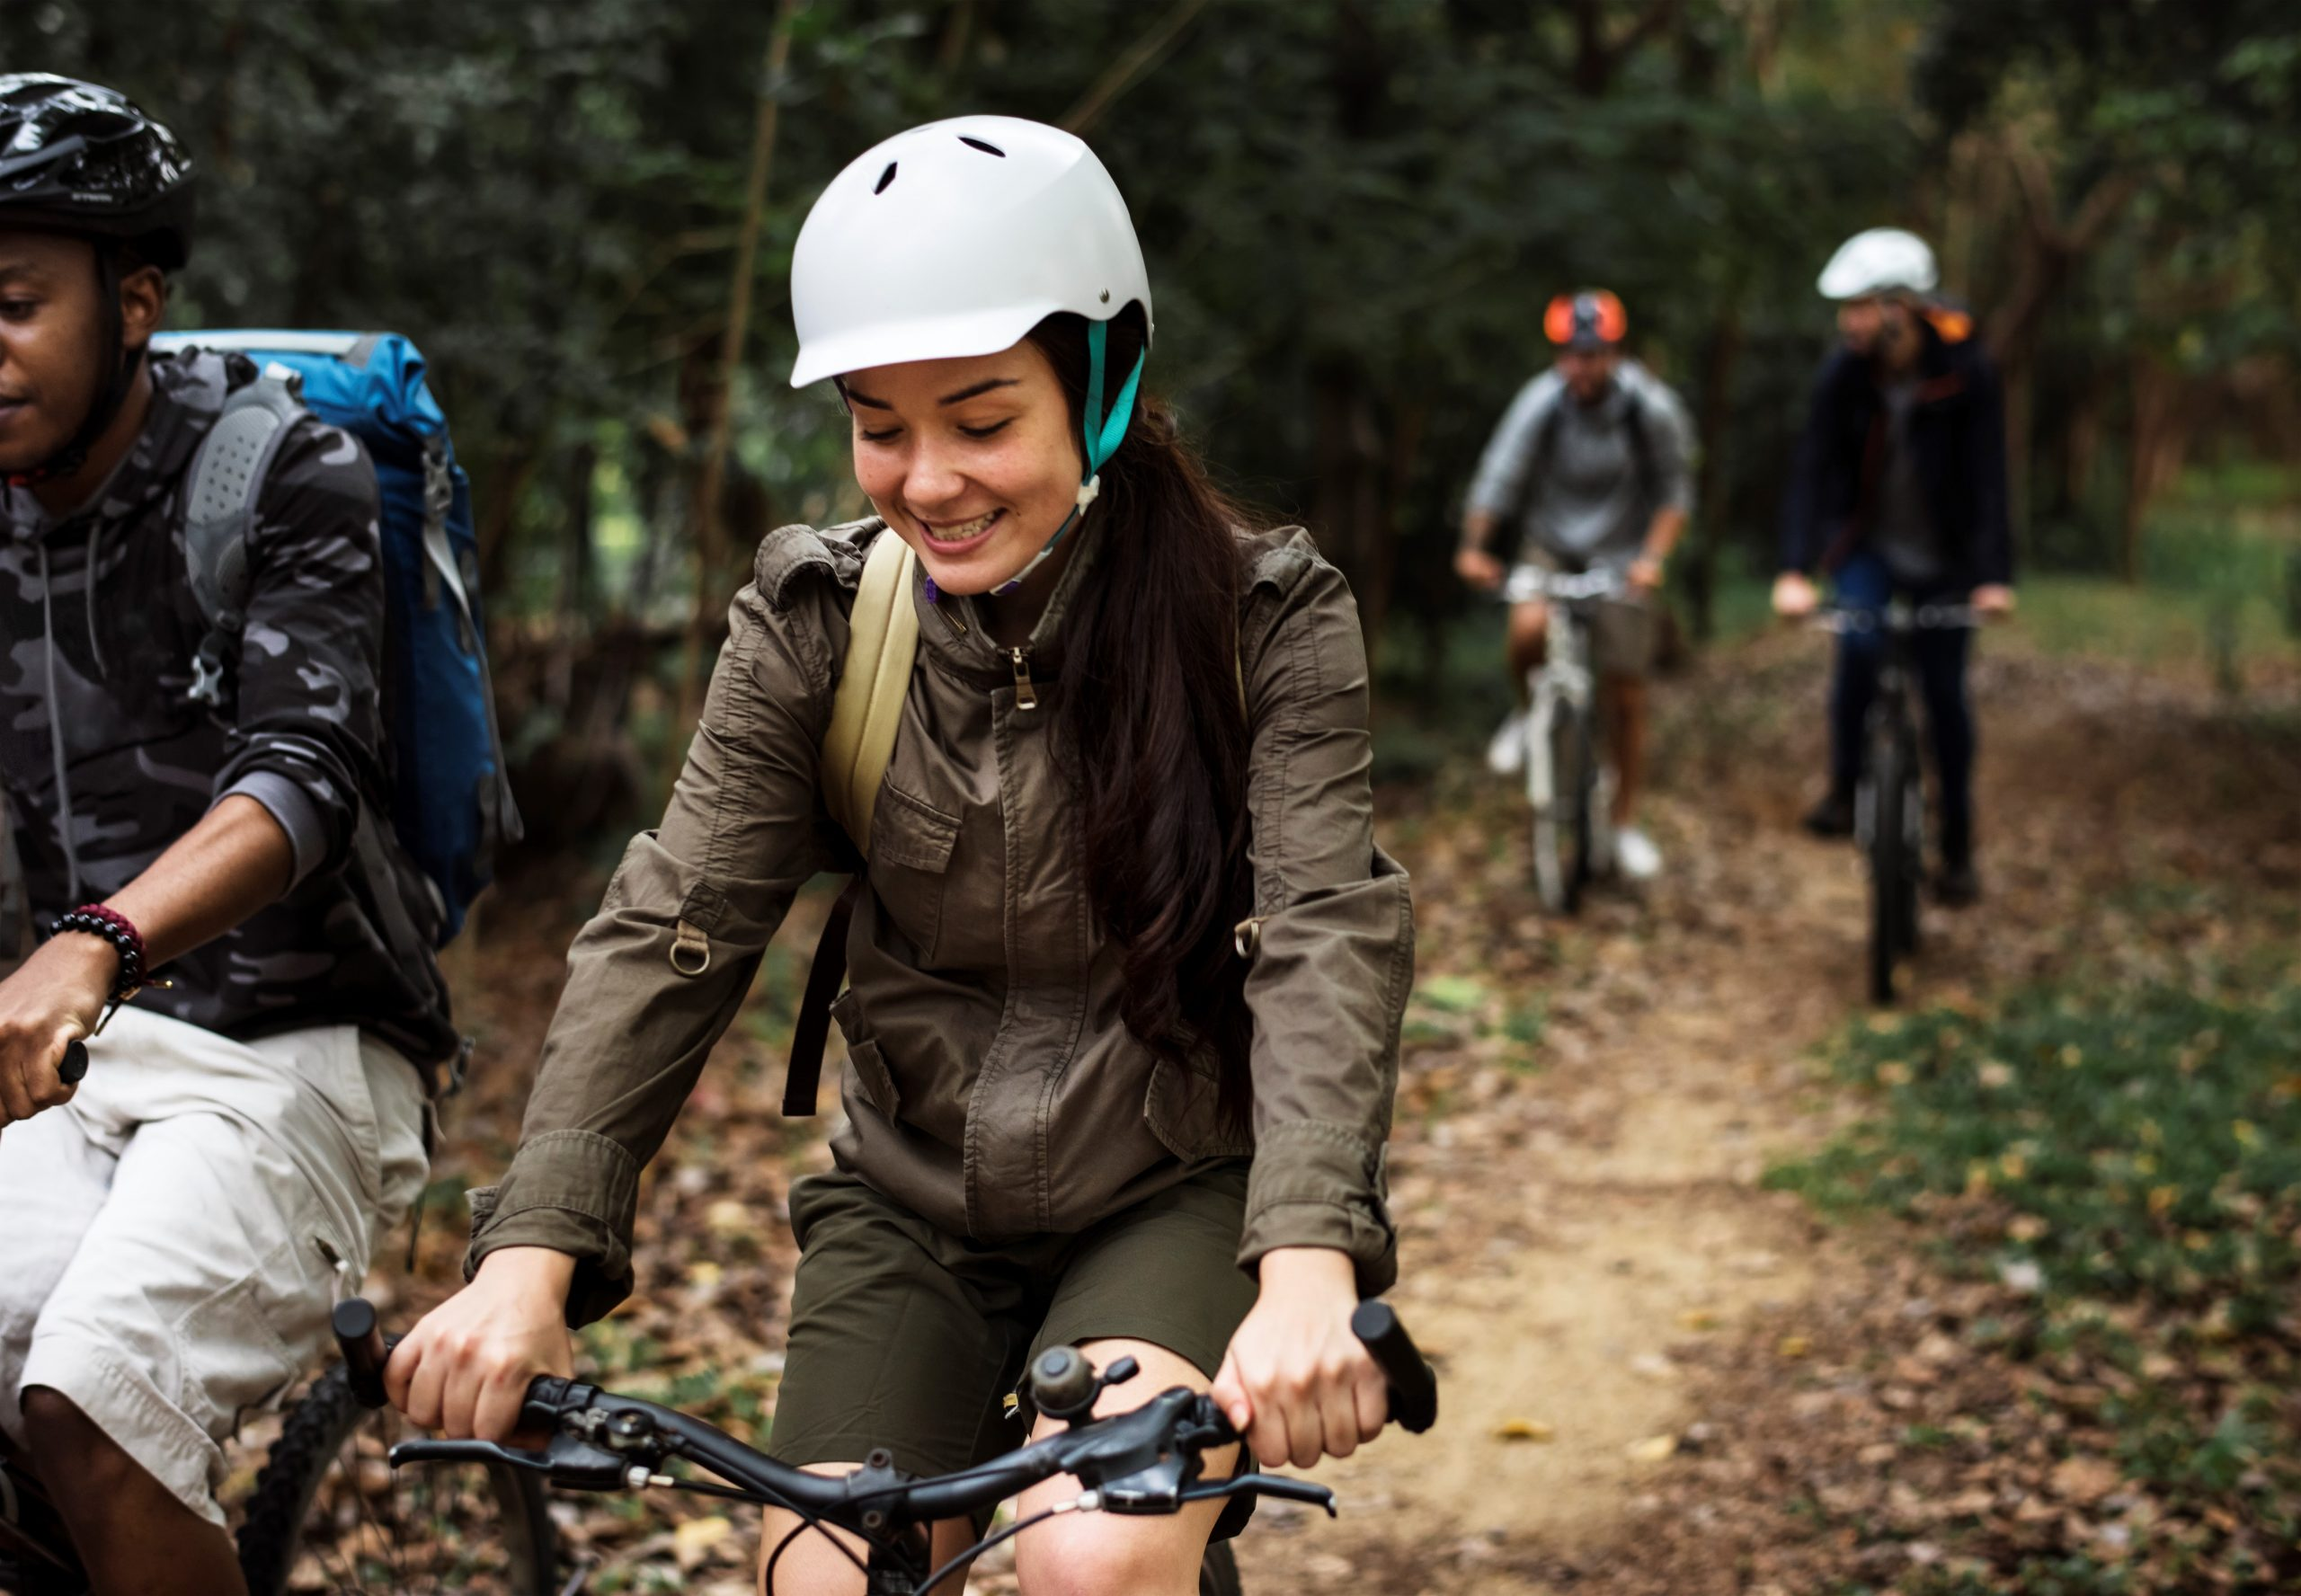 People ride their bikes, smiling, through some woodland